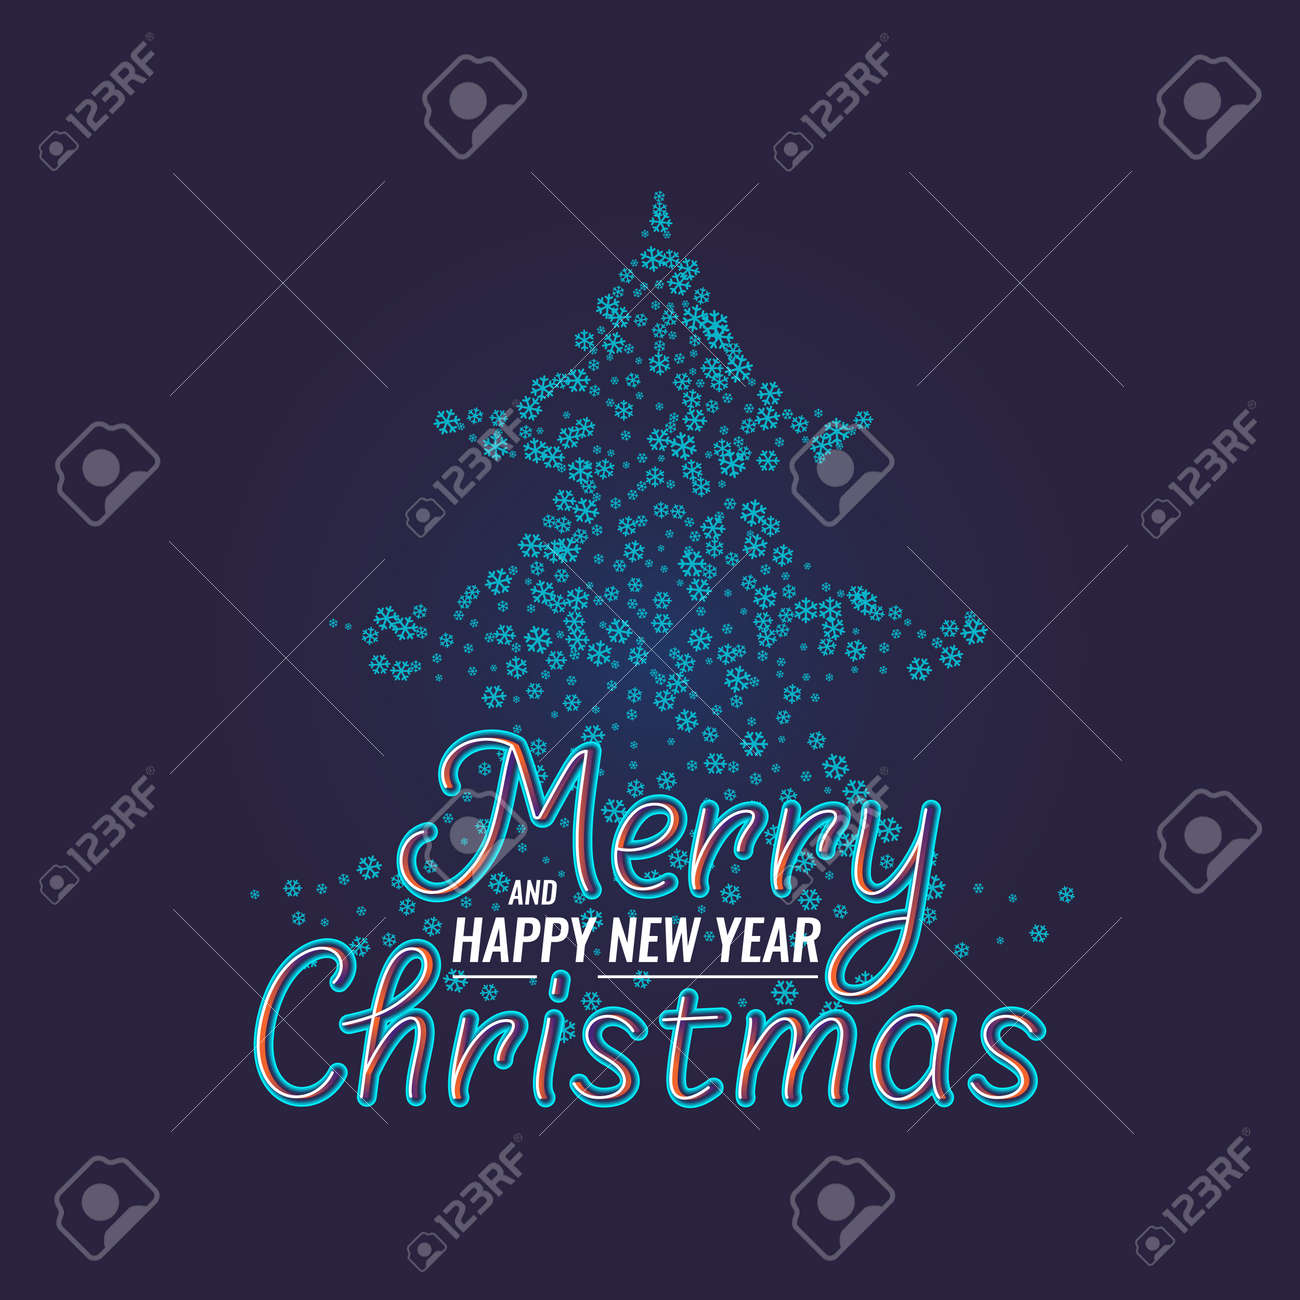 Merry Christmas and Happy New Year. Modern hand drawn lettering phrase.  Handwritten inscriptions and